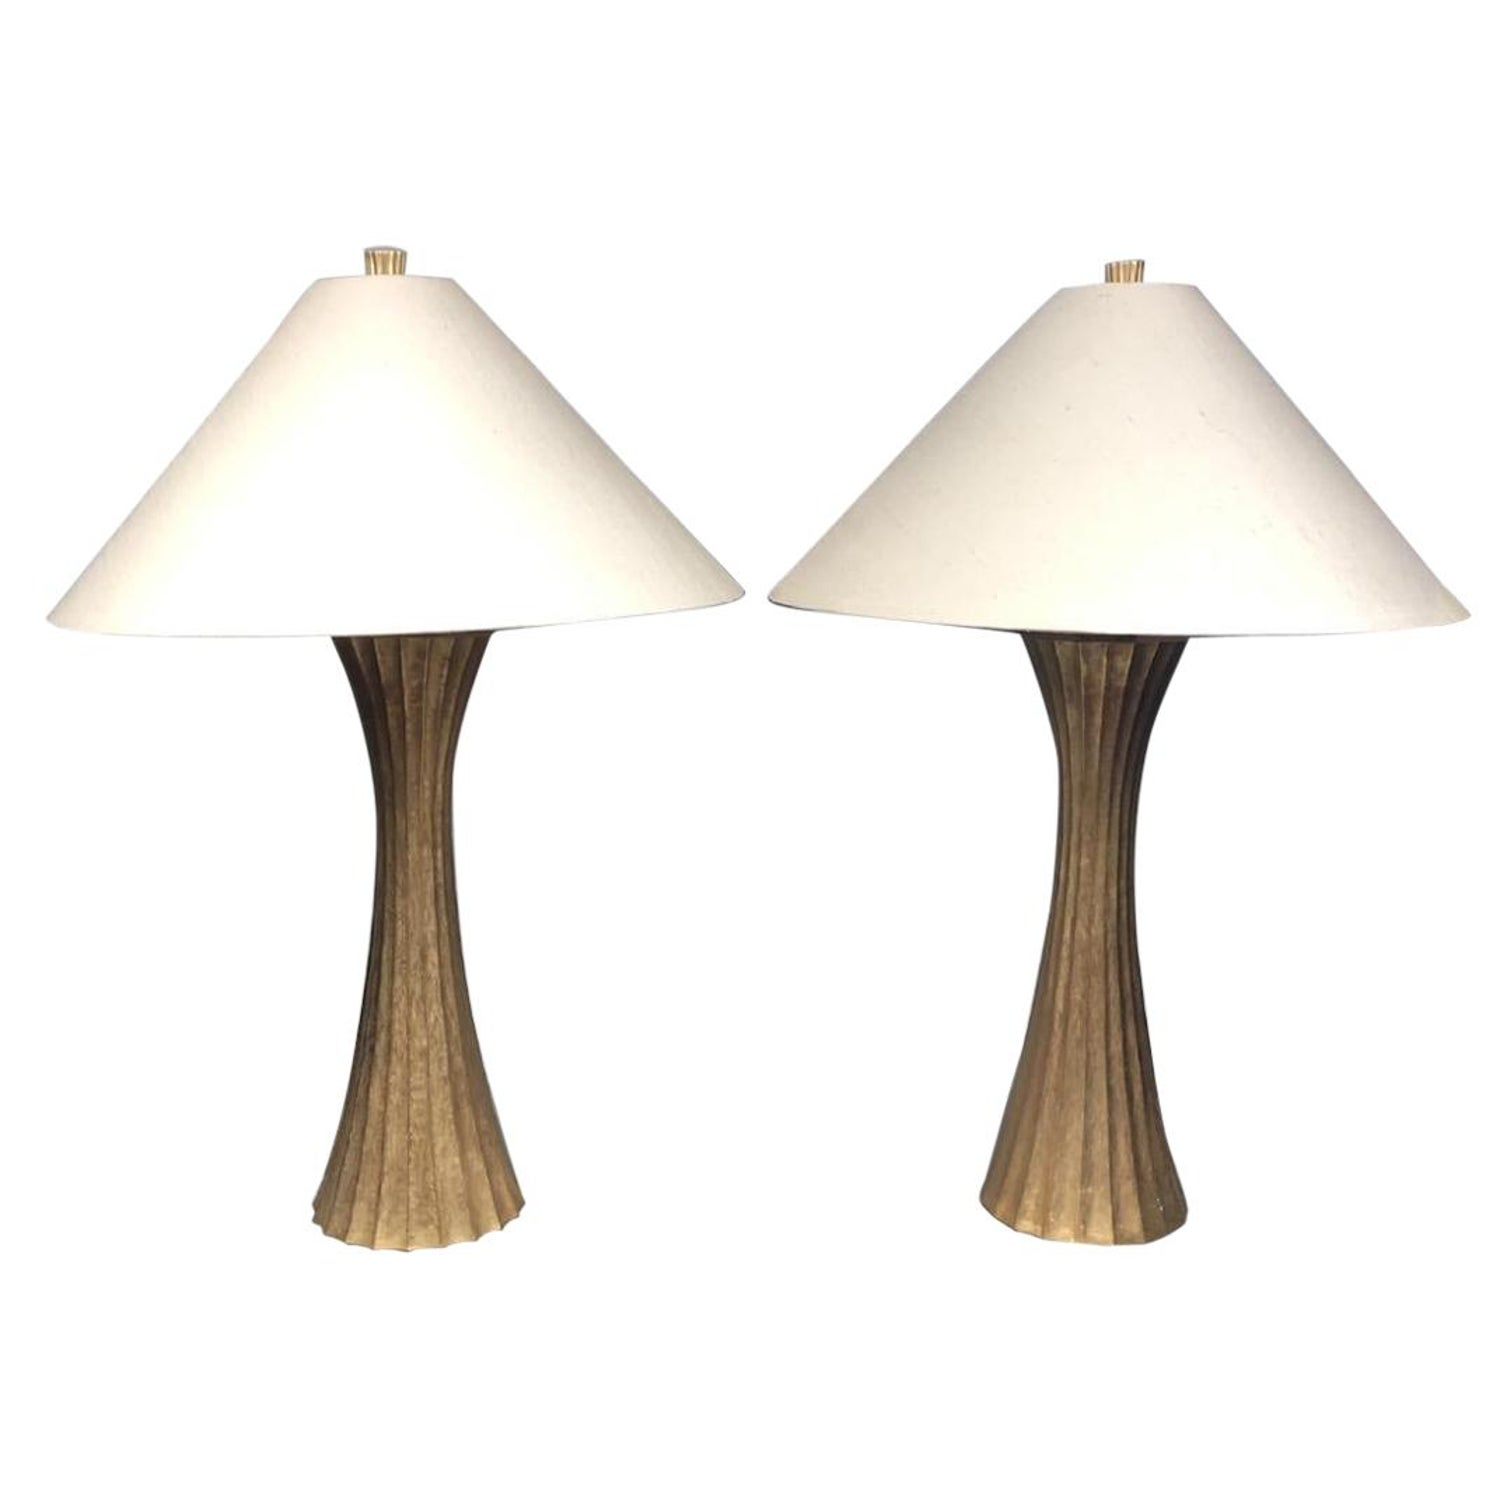 Diva Table Lamp In Burnished Br By Robert Kuo For Mcguire